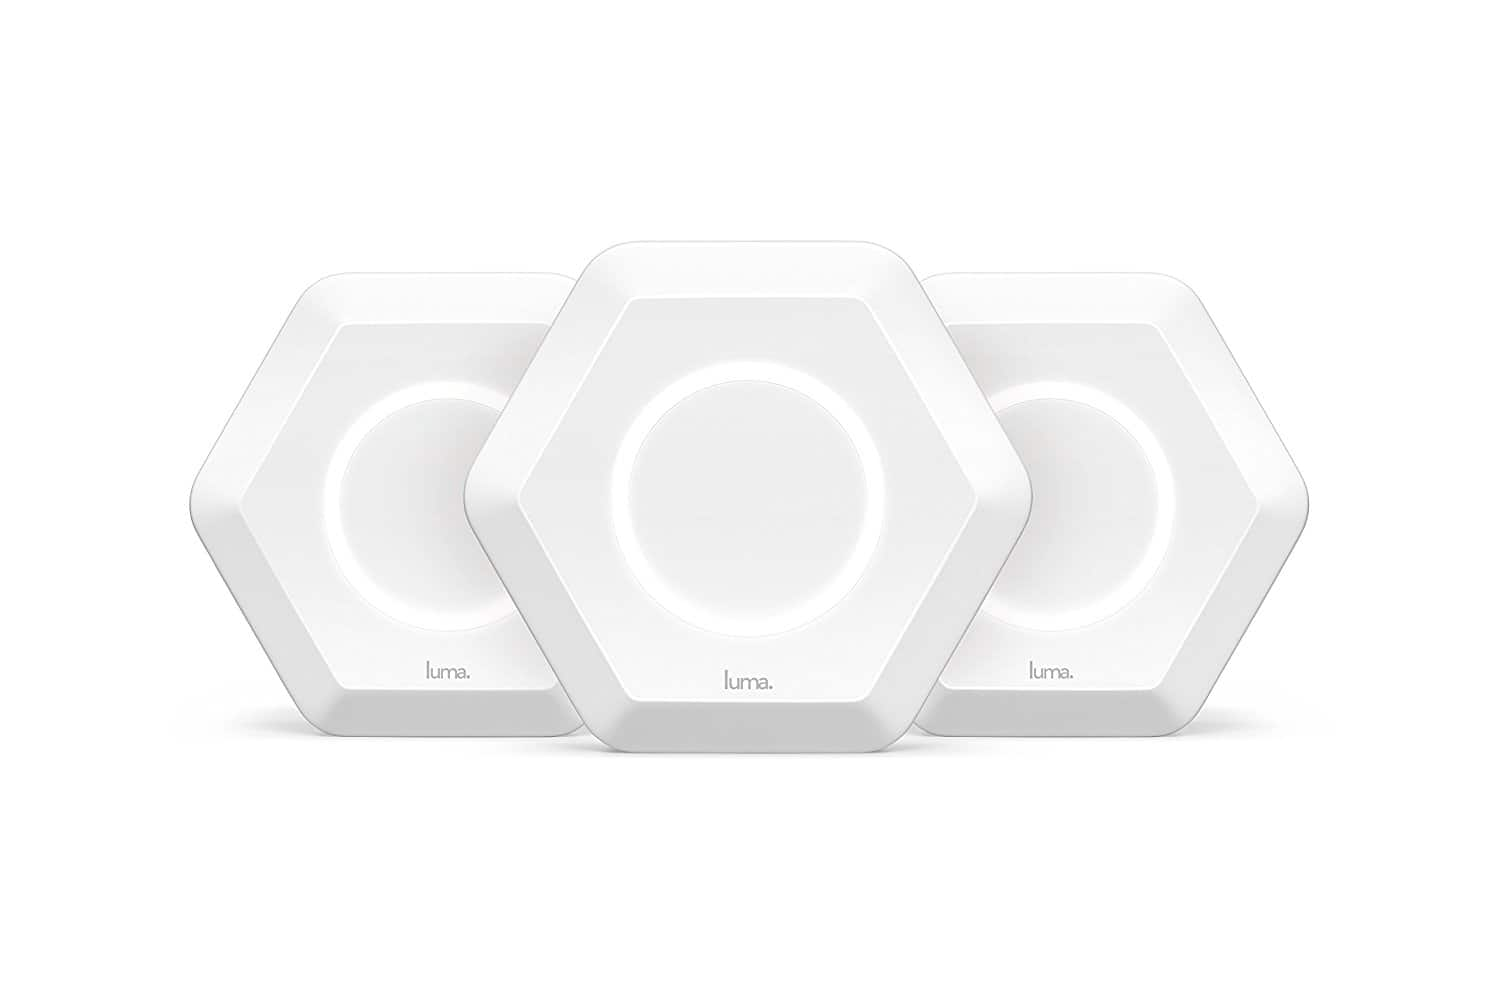 Luma Whole Home WiFi mesh system w APP - 3 pack $99 @ Woot $99.99